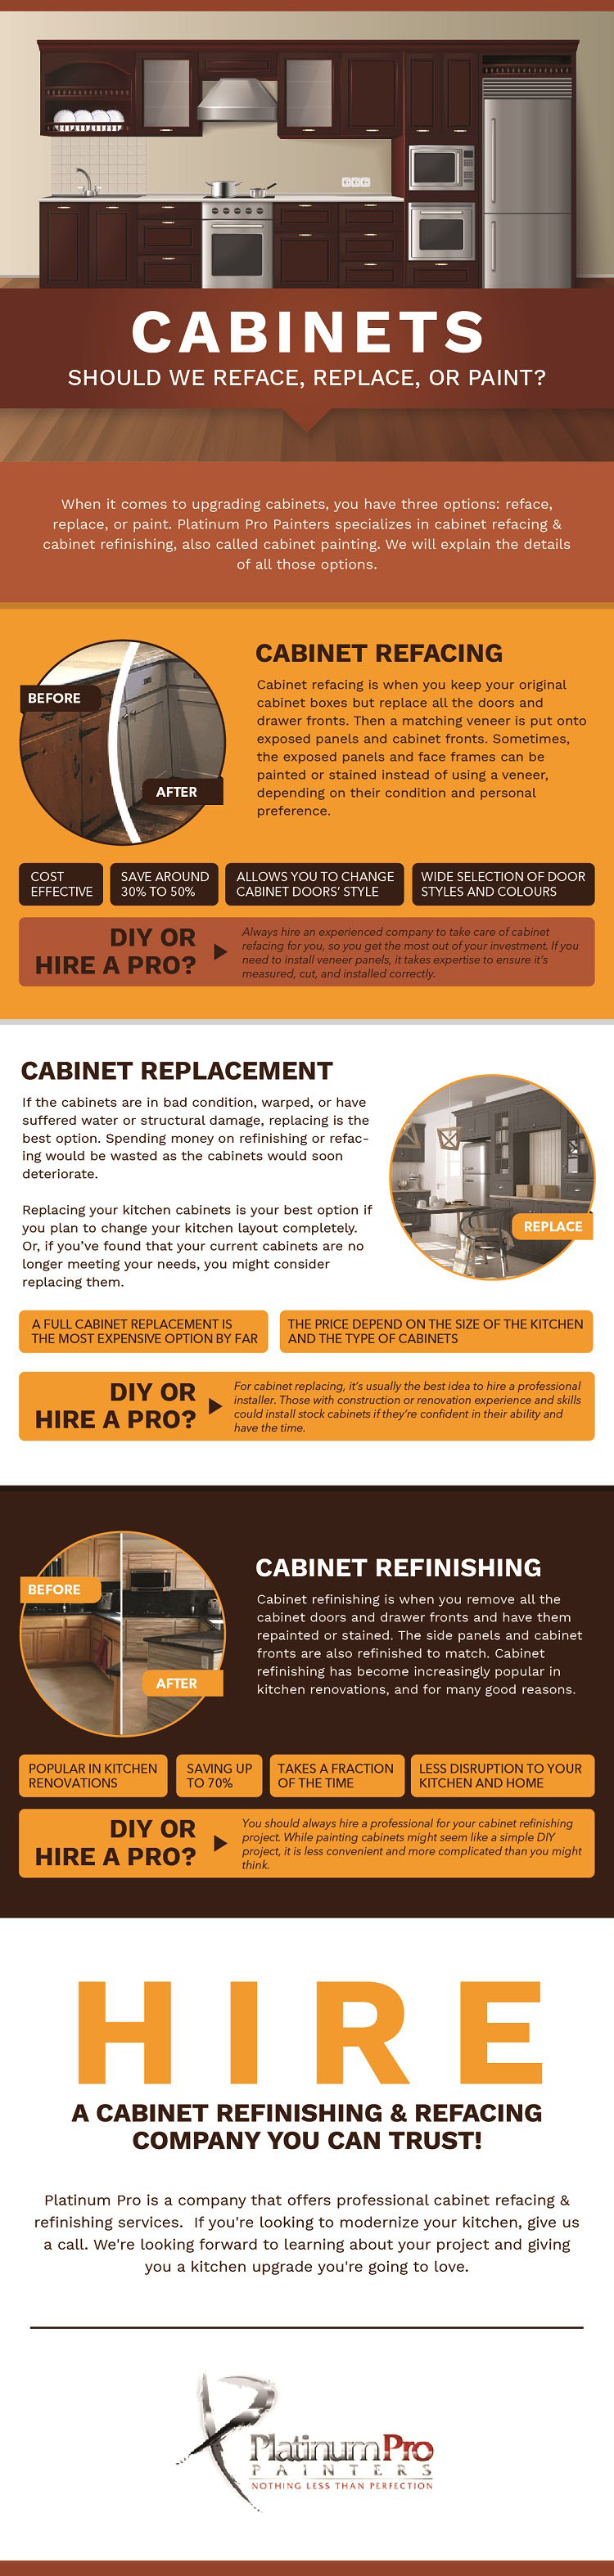 Cabinets – Should We Reface, Replace, or Paint?